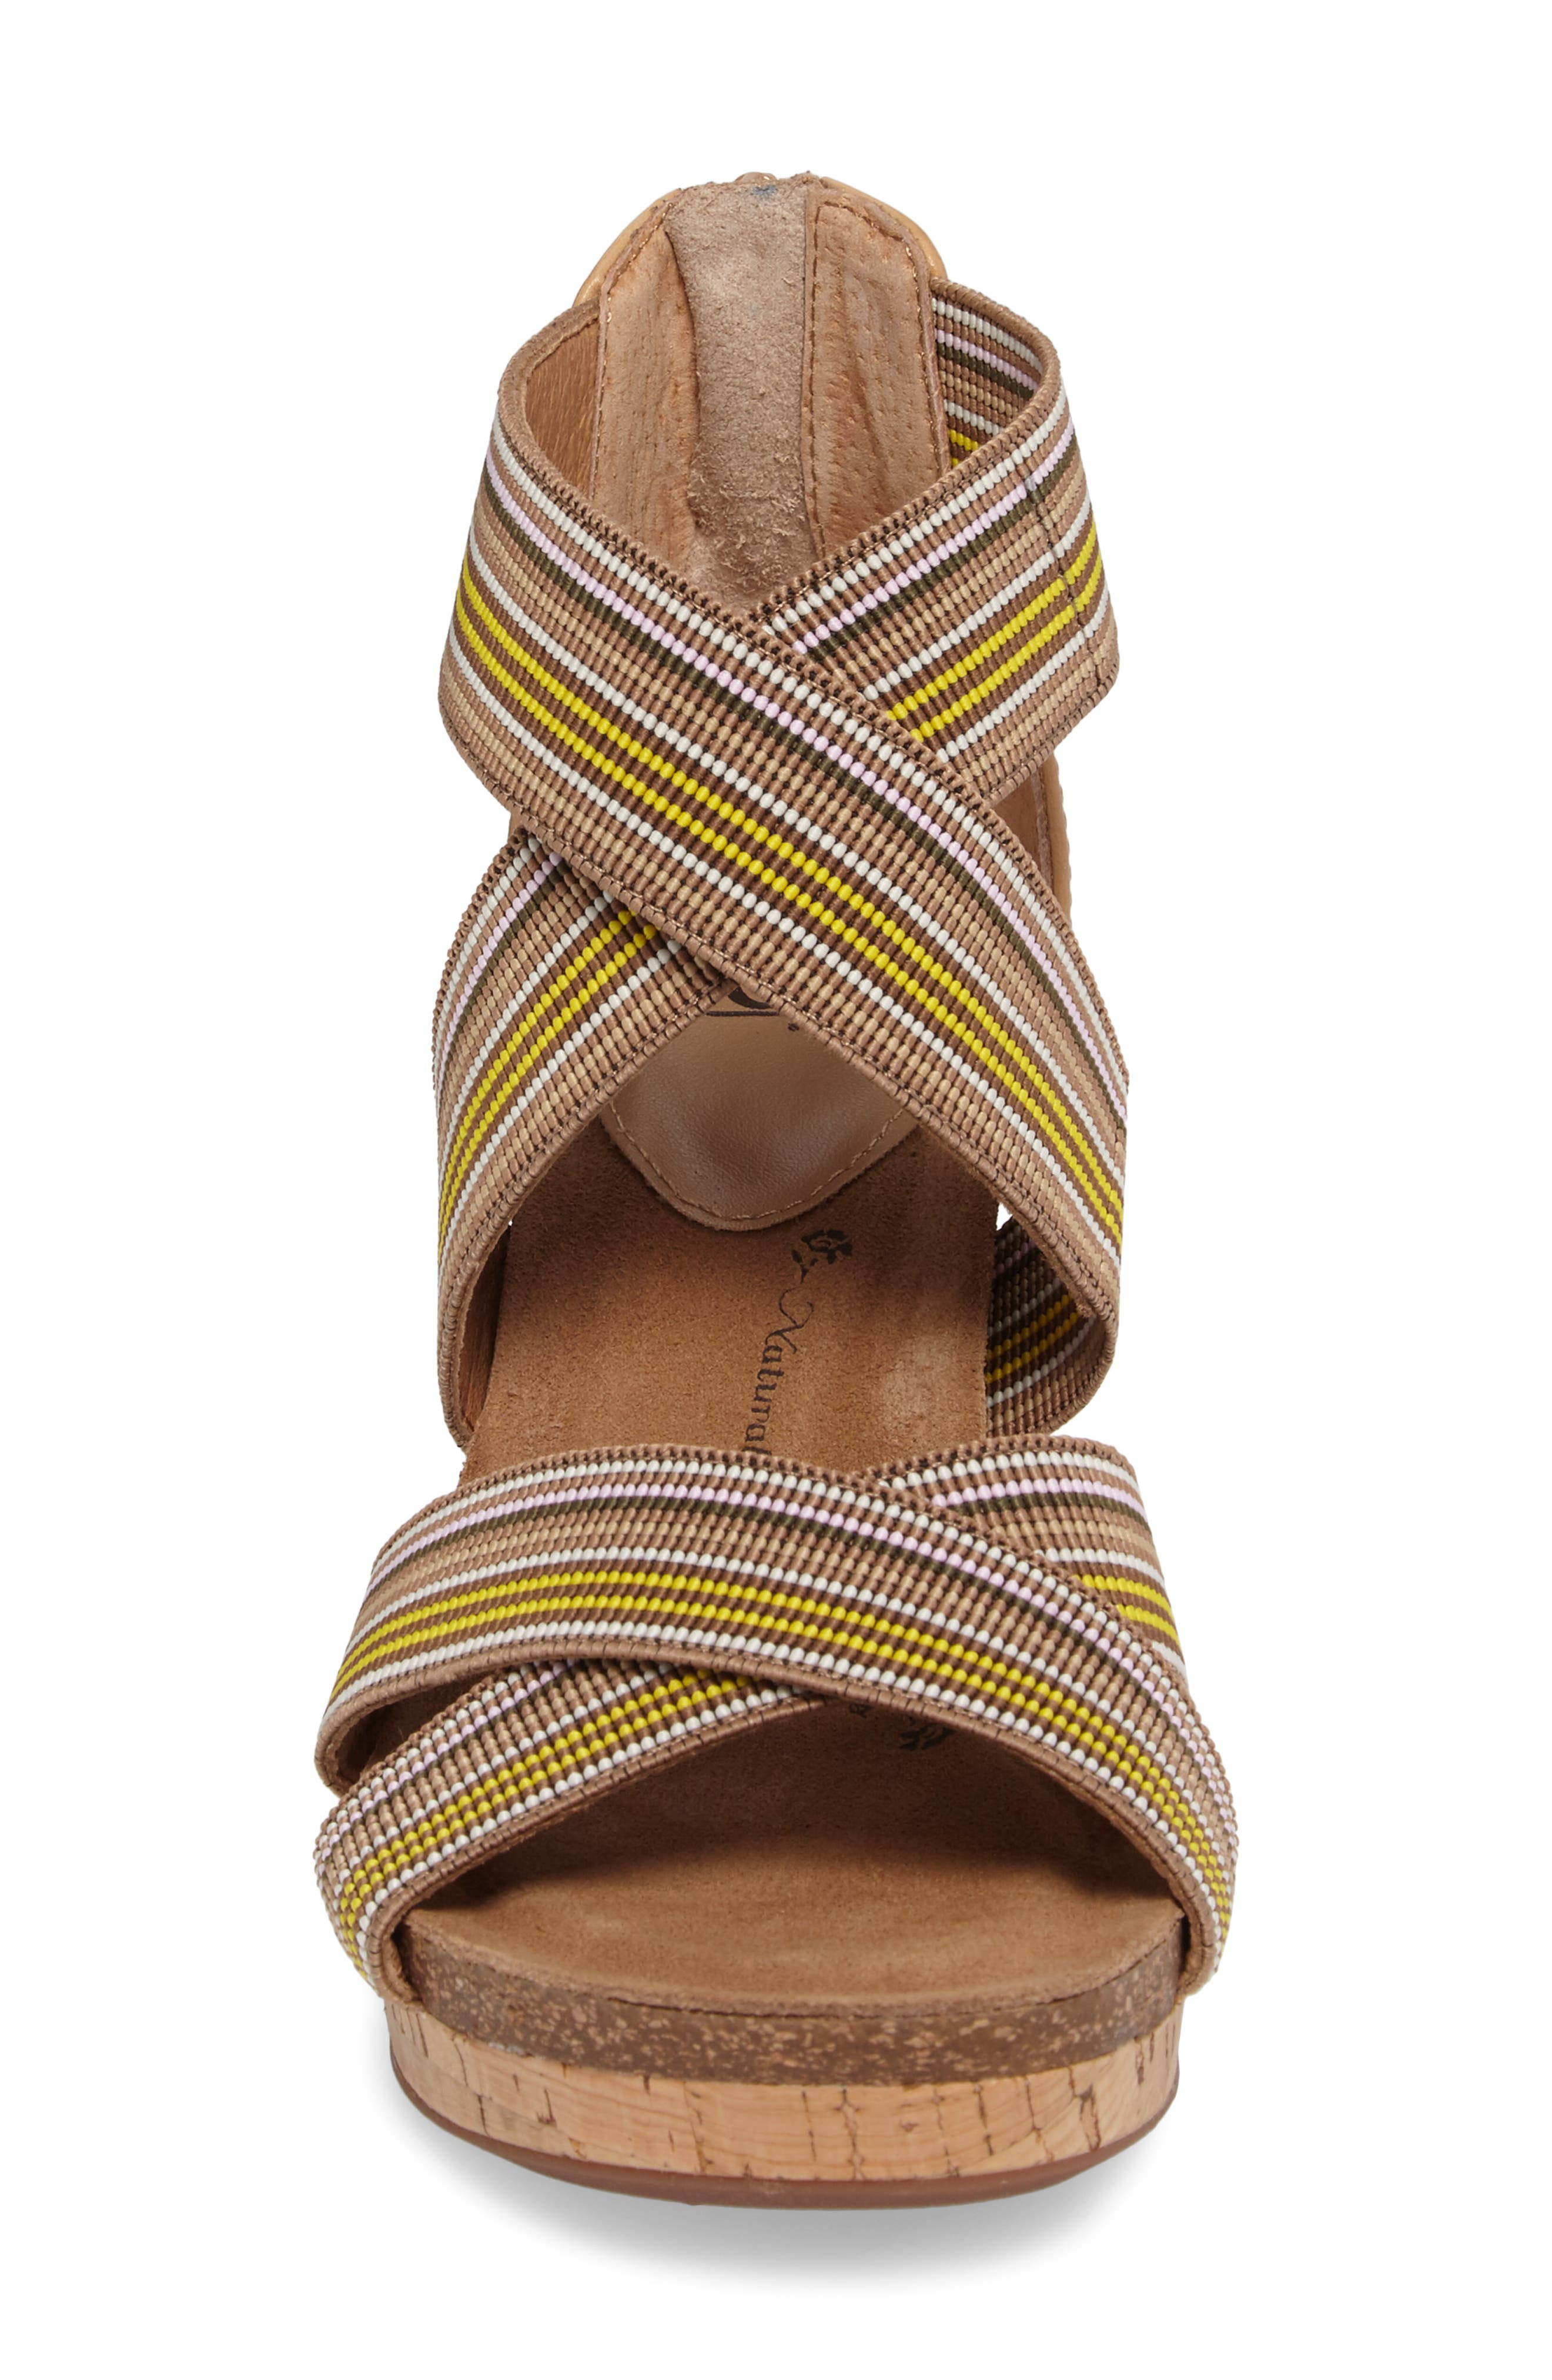 Cary Cross Strap Wedge Sandal,                             Alternate thumbnail 10, color,